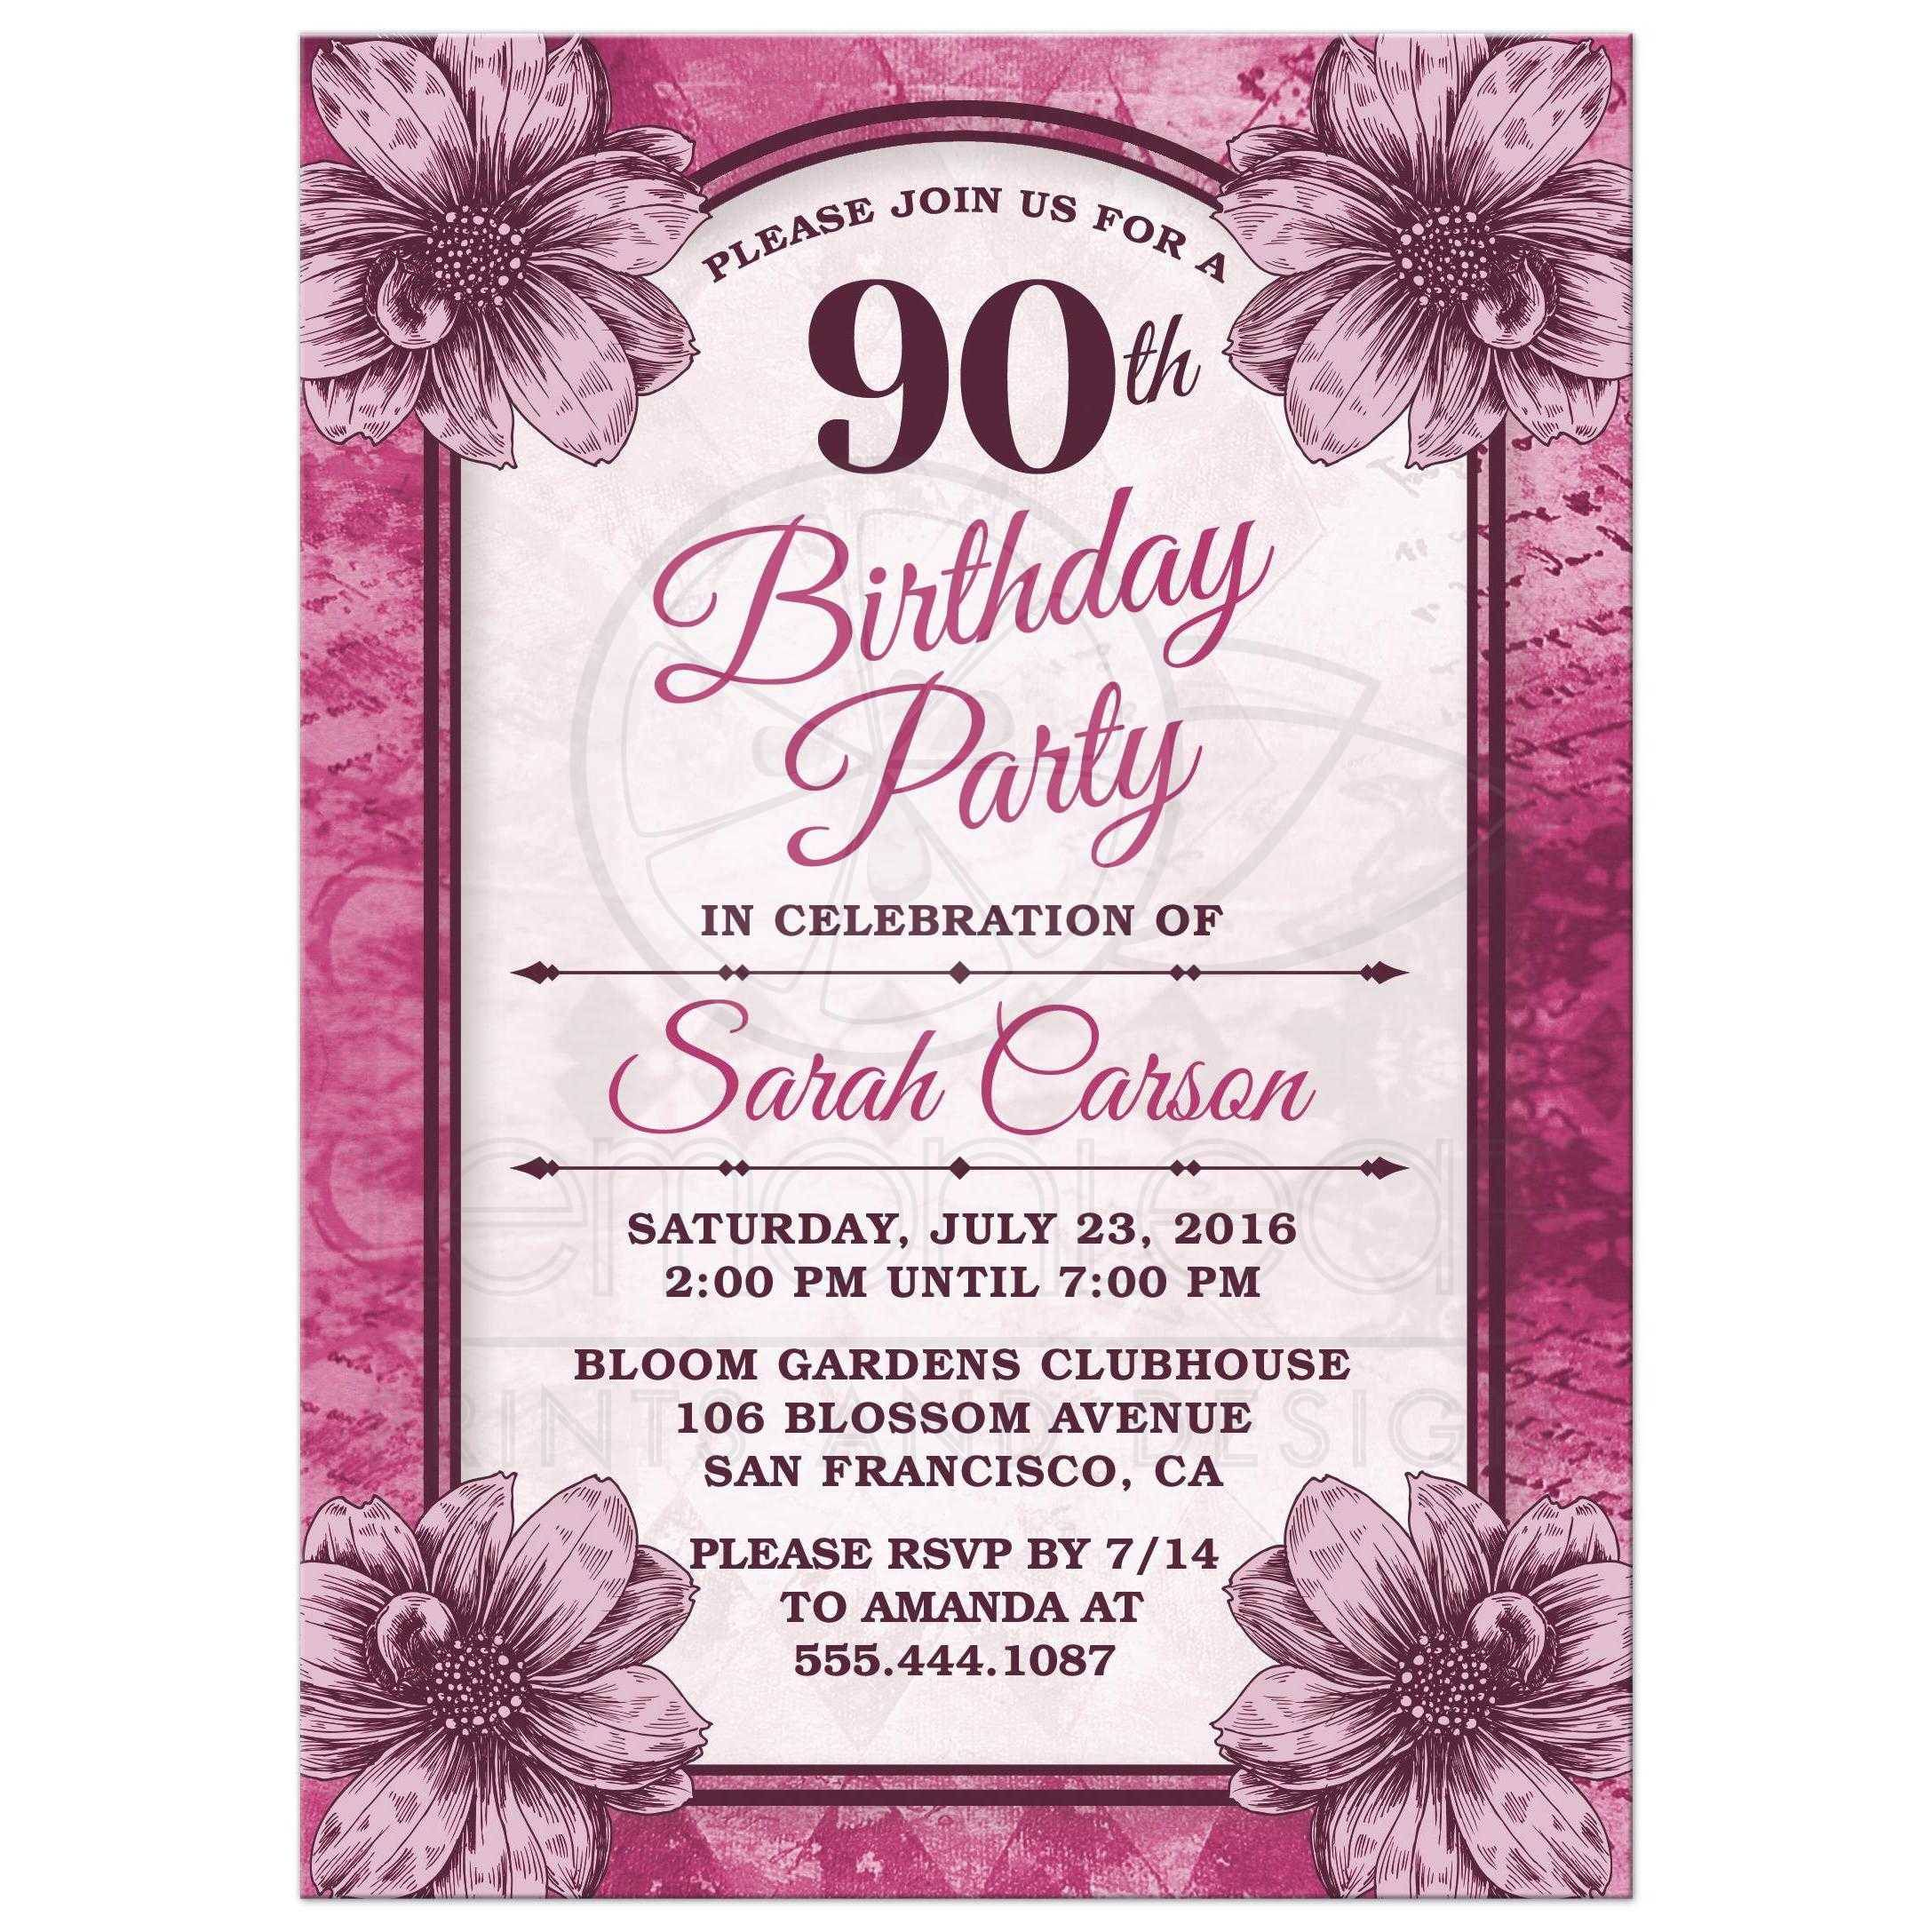 90th birthday party invitations templates free party ideas 90th birthday party invitations templates free filmwisefo Image collections